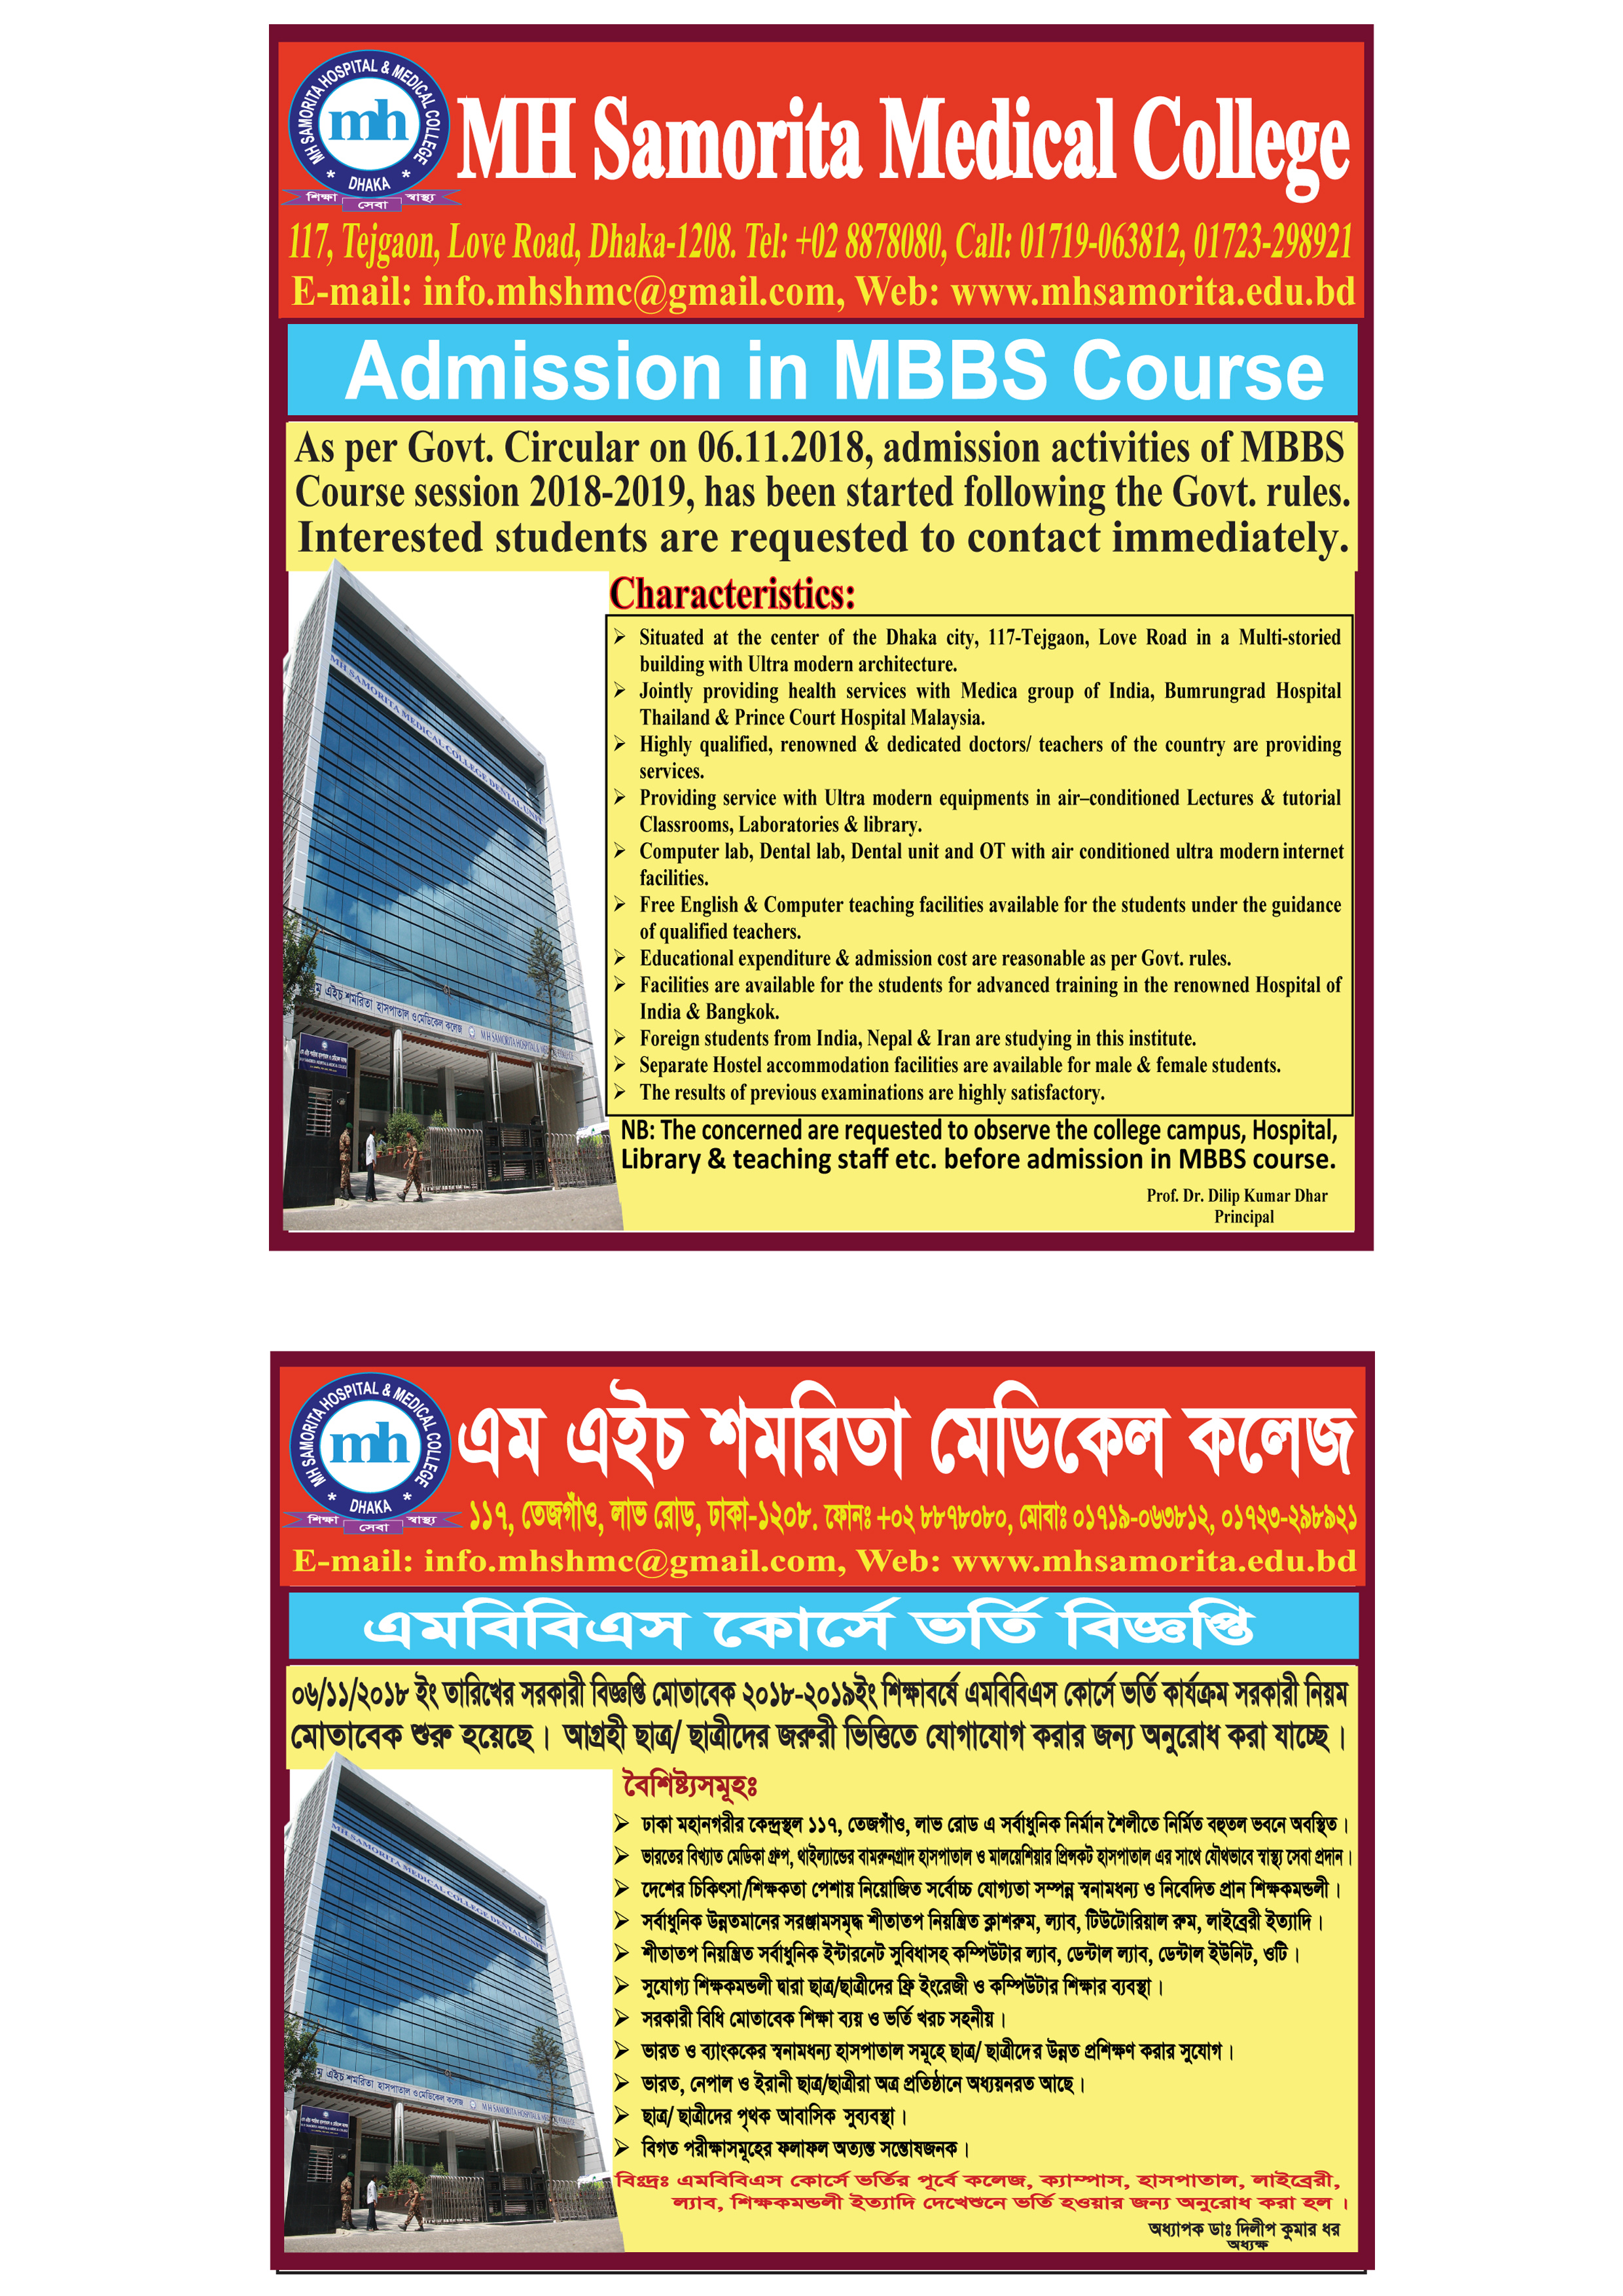 MH Samorita Hospital and Medical College | Admission